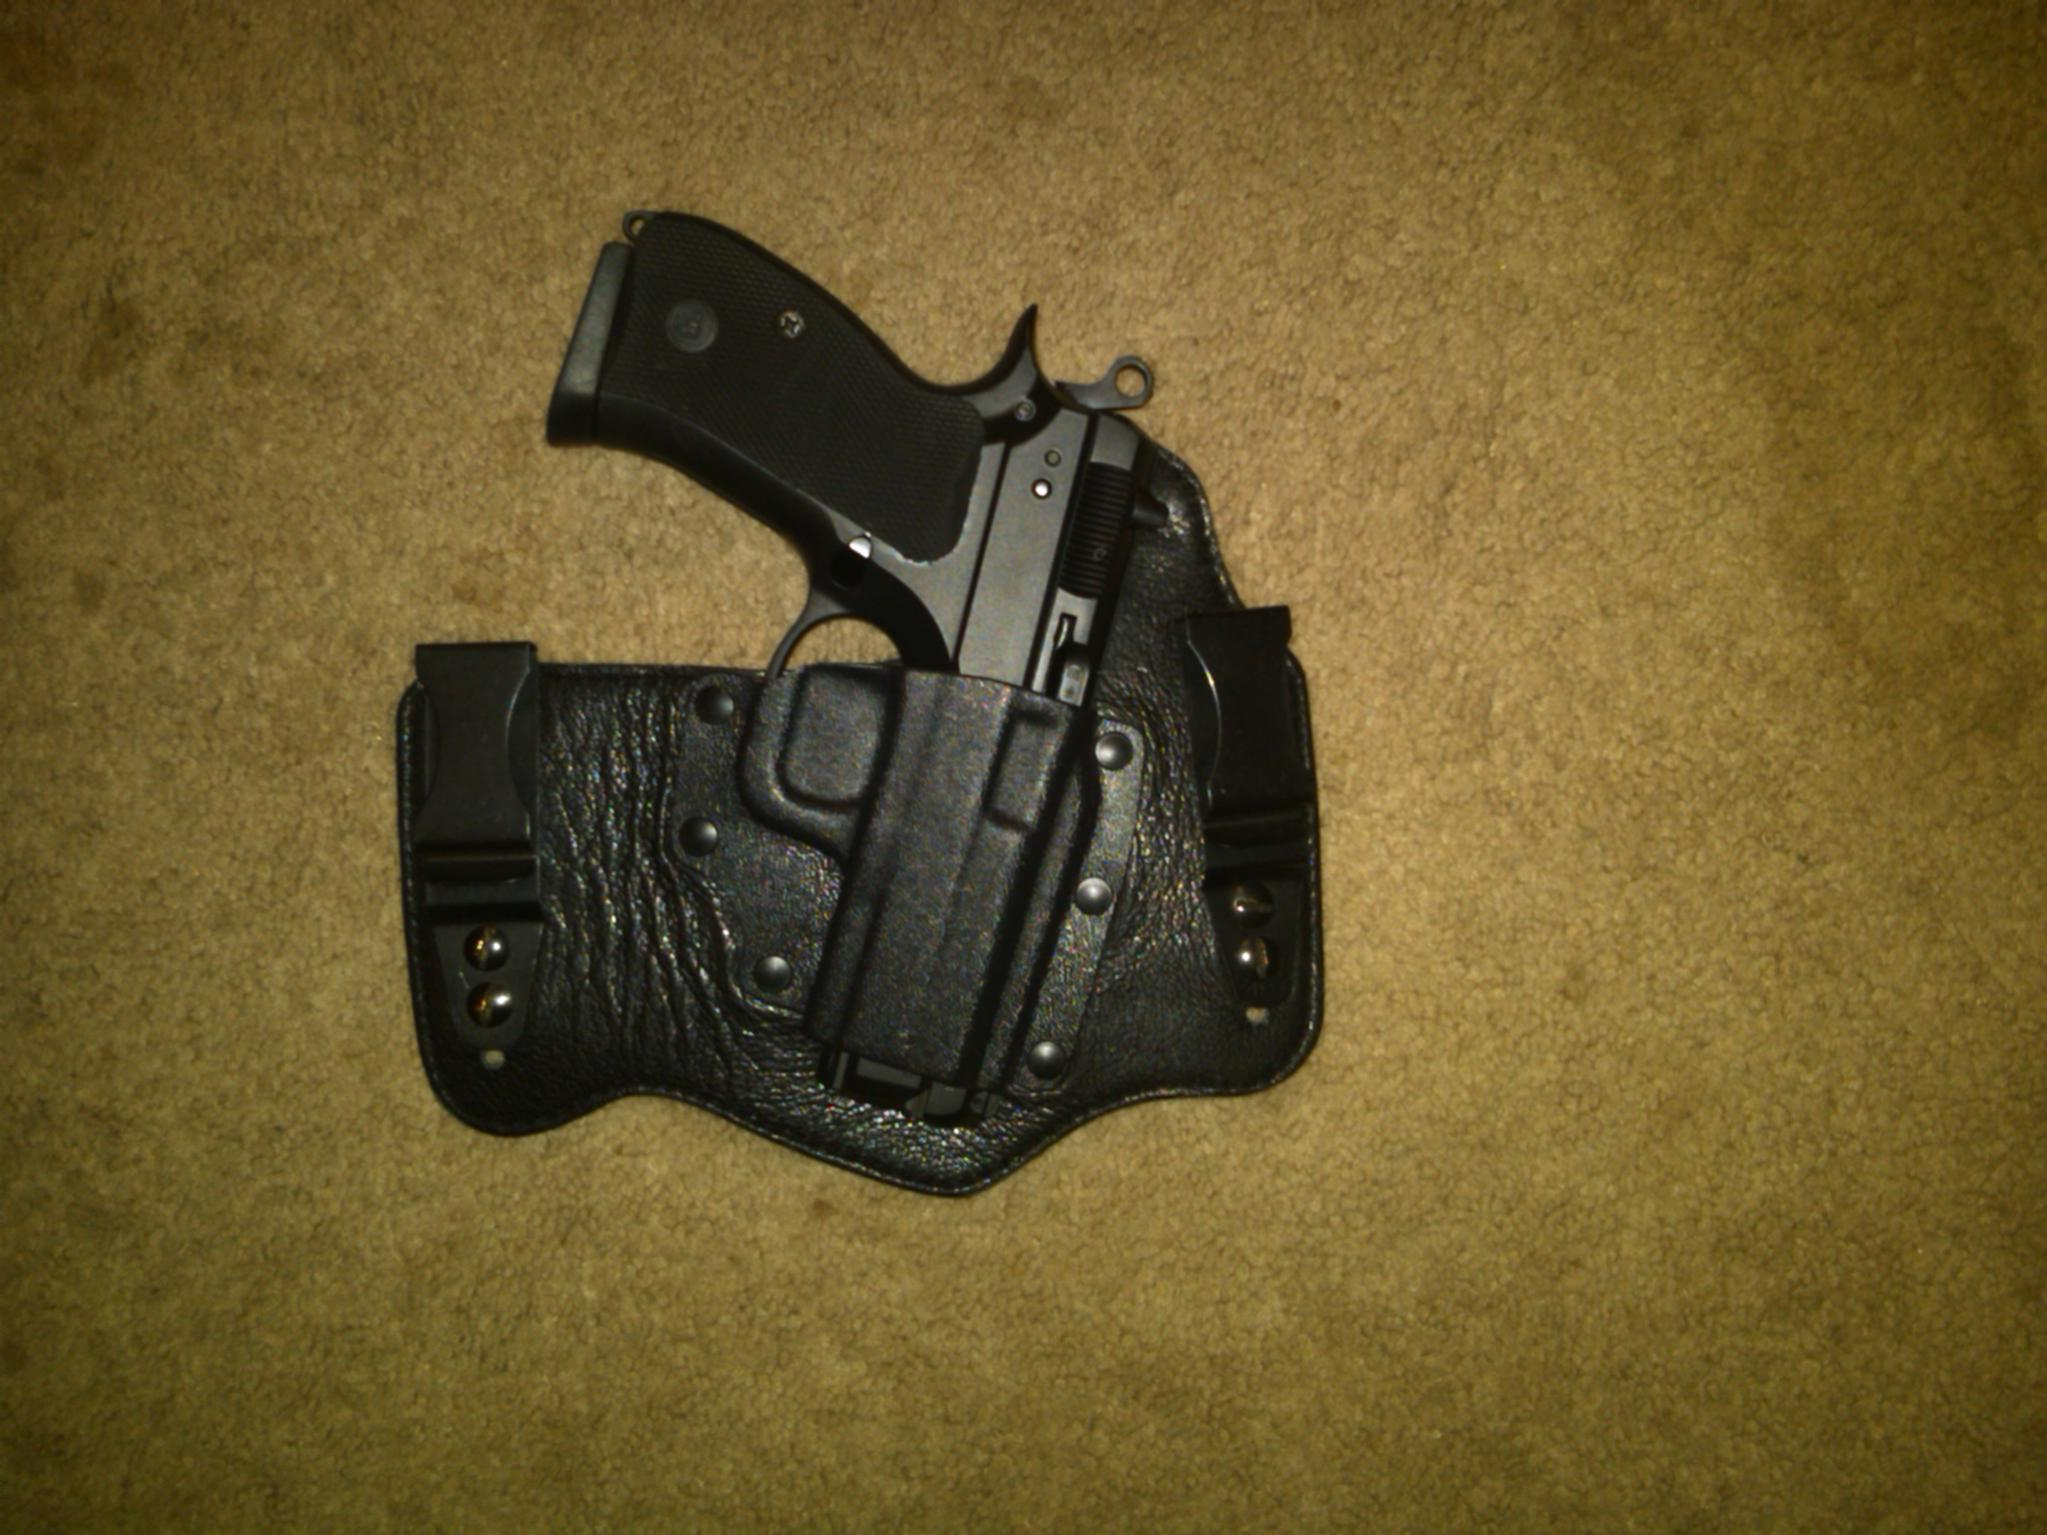 Tucked Holsters in Summer-img00082-20110413-2006.jpg